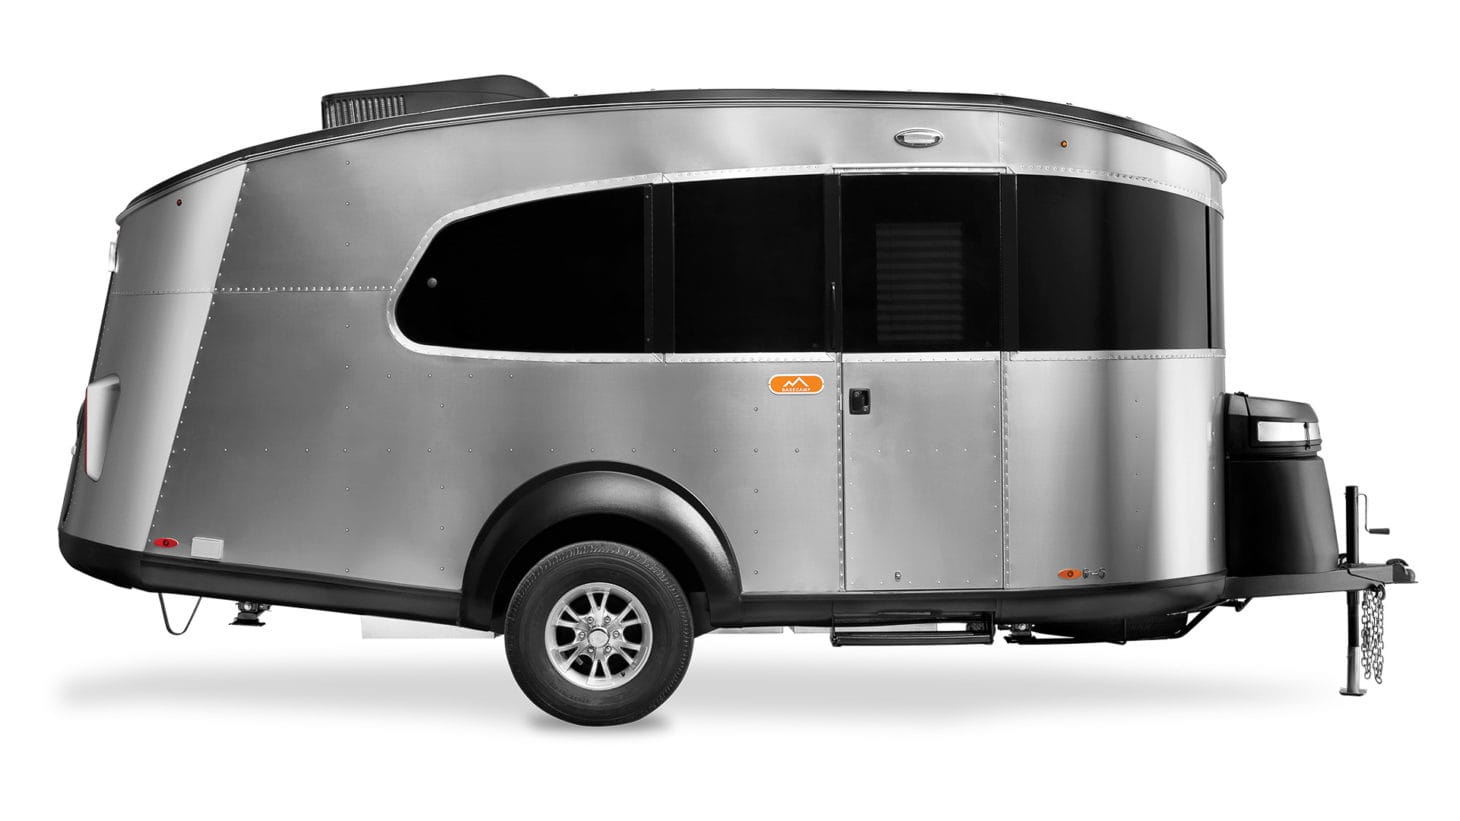 A product photo of the Airstream Basecamp set on a white background